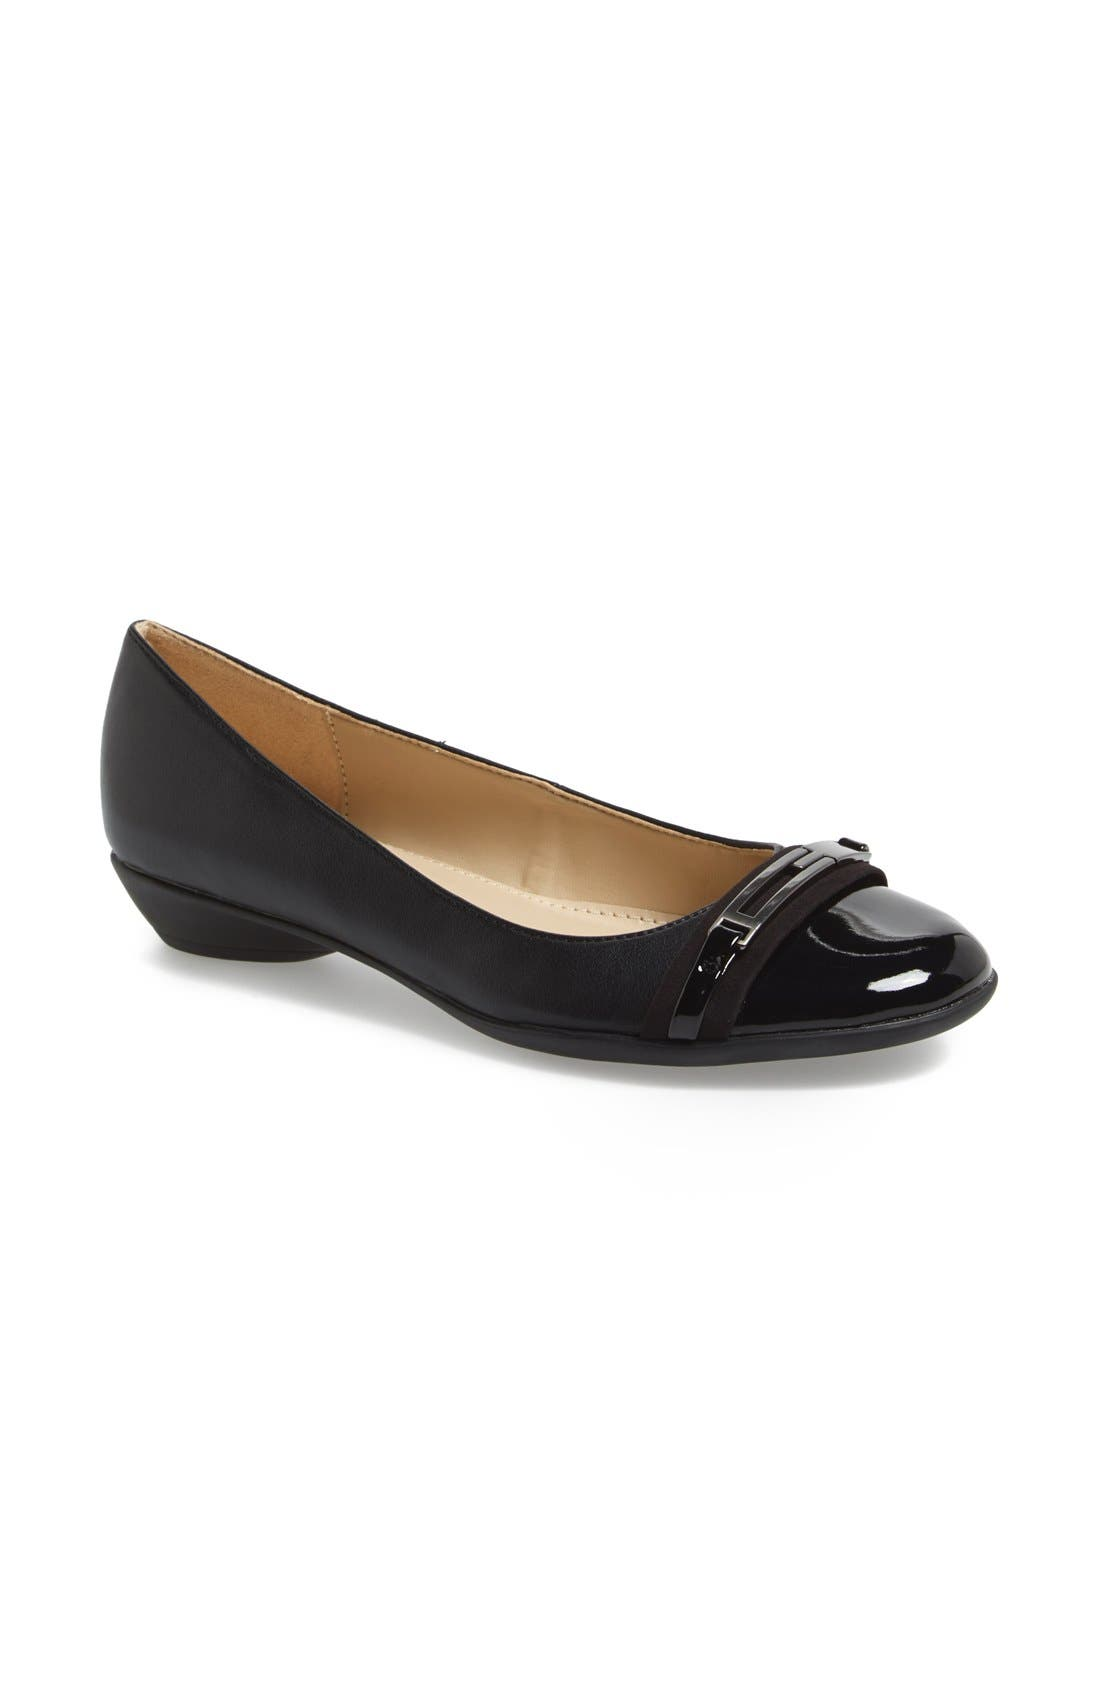 Alternate Image 1 Selected - Naturalizer 'Helina' Flat (Women)